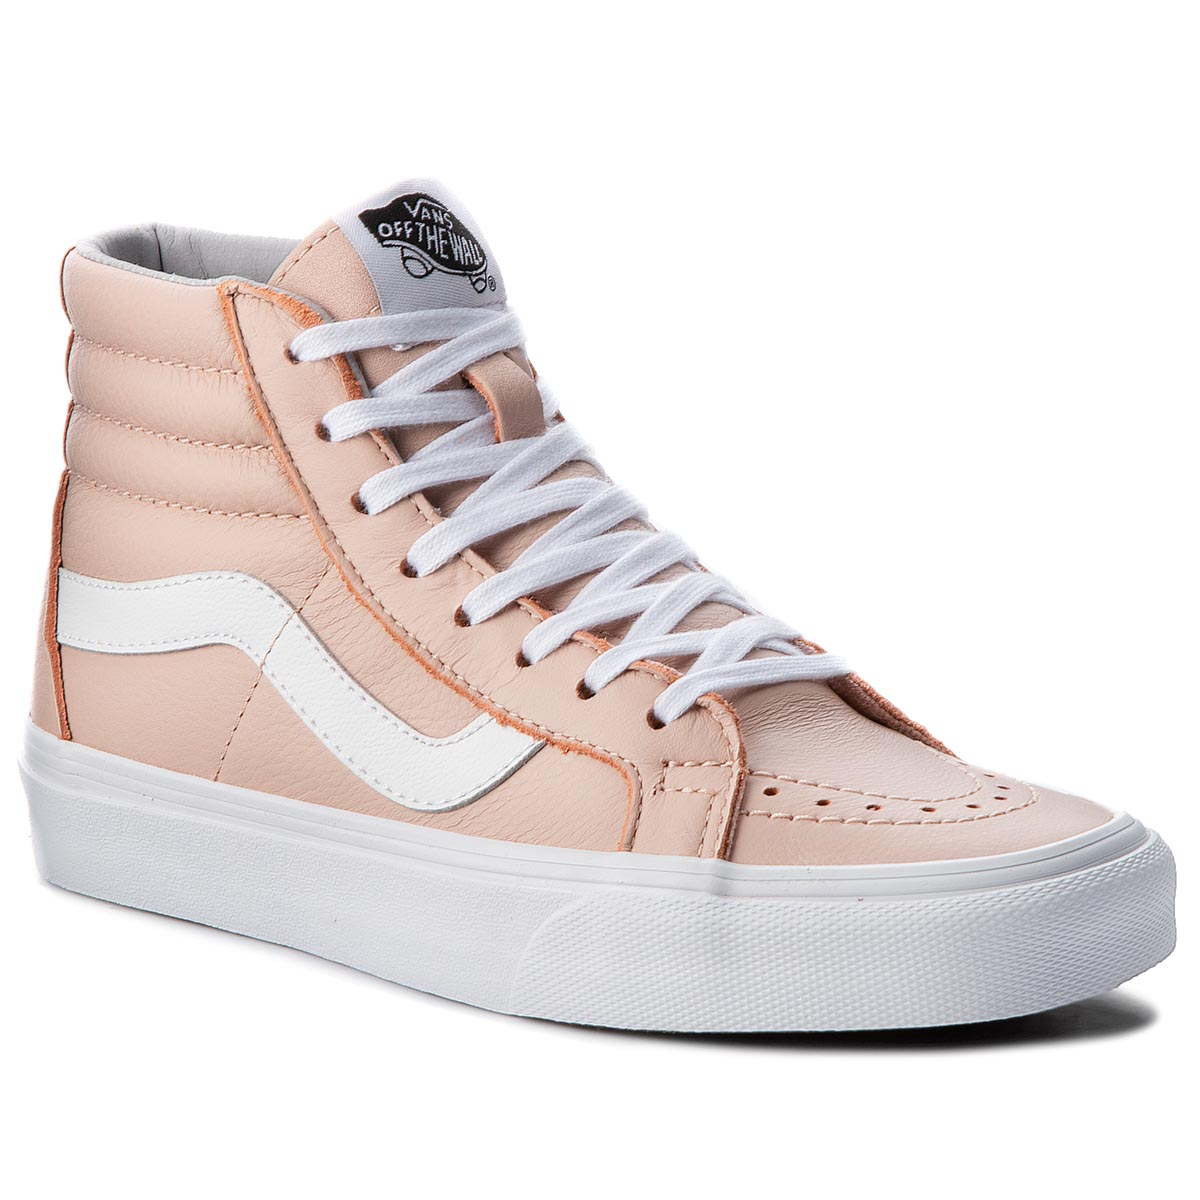 Sneakers VANS - Sk8-Hi Reissue VN0A2XSBQD6 (Leather) Oxford/Evening